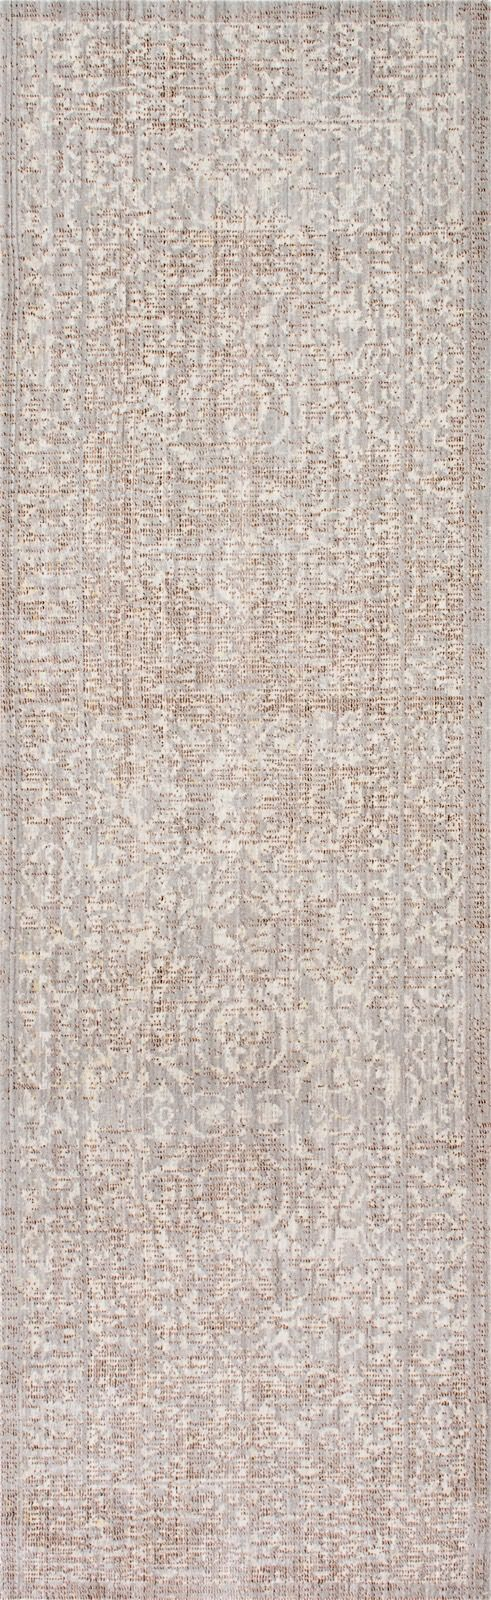 nuloom vintage siobhan transitional area rug collection